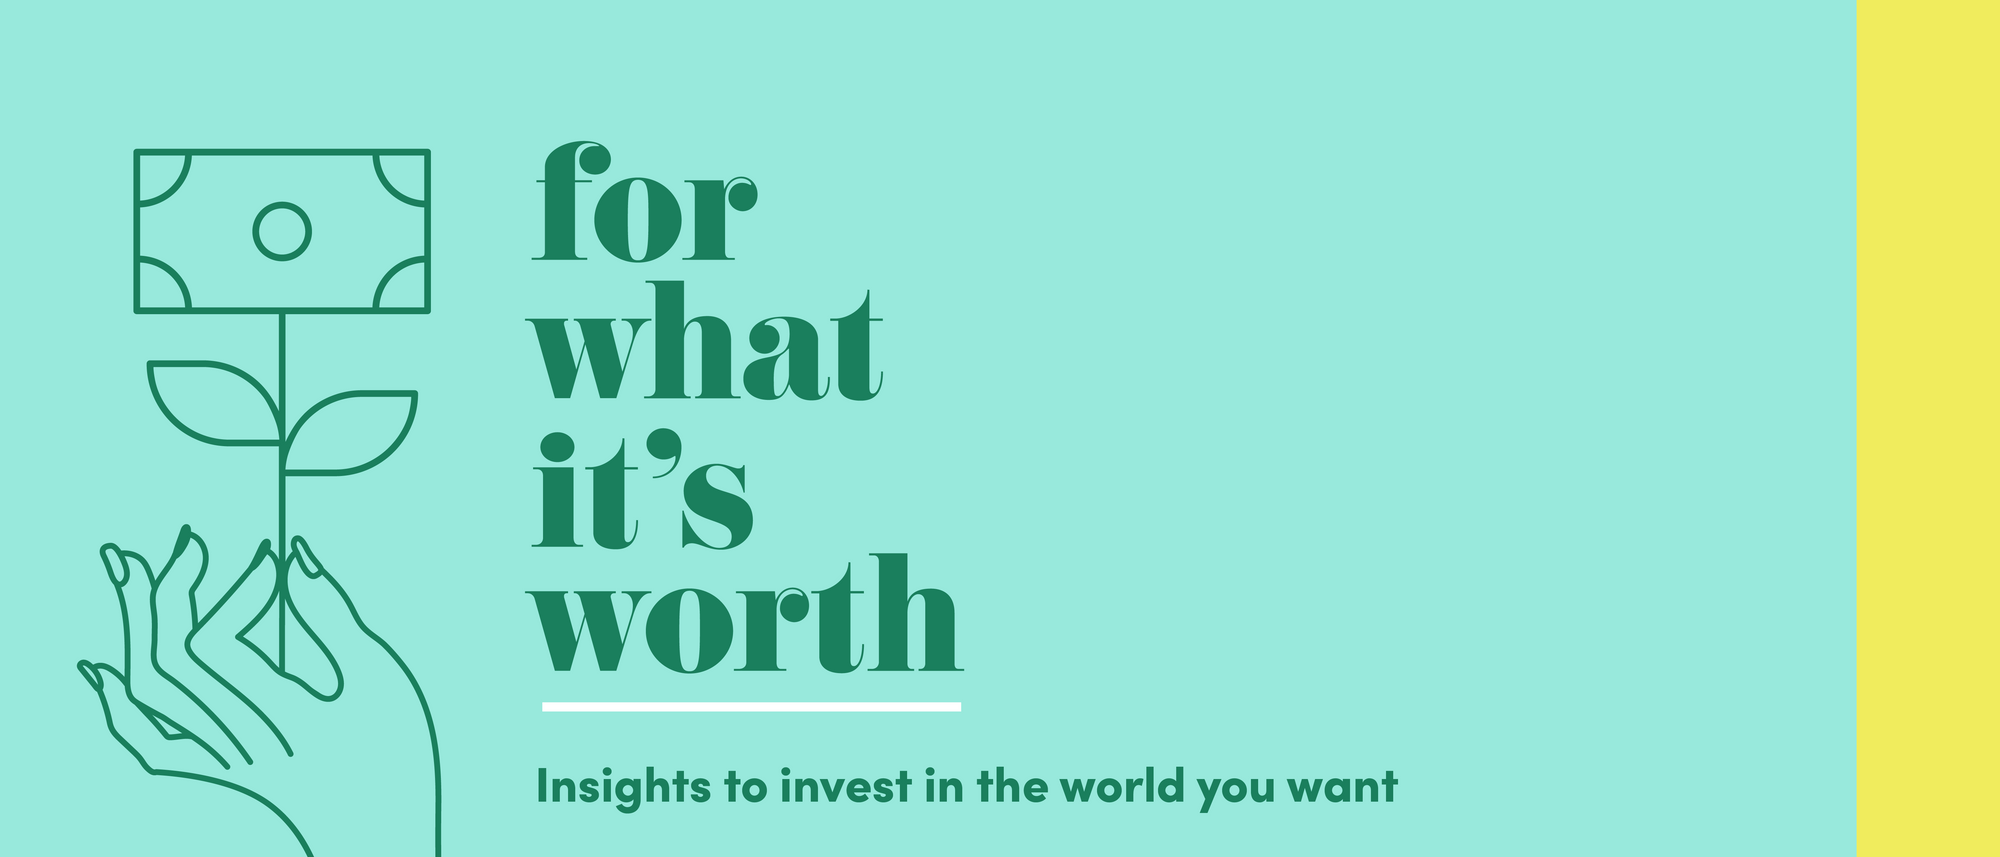 """The email header with the """"For What It's Worth"""" logo, graphic that includes a hand holding a representation of a blooming flower that has money blooming at the top, and the tagline """"Insights to invest in the world you want"""" underneath it."""